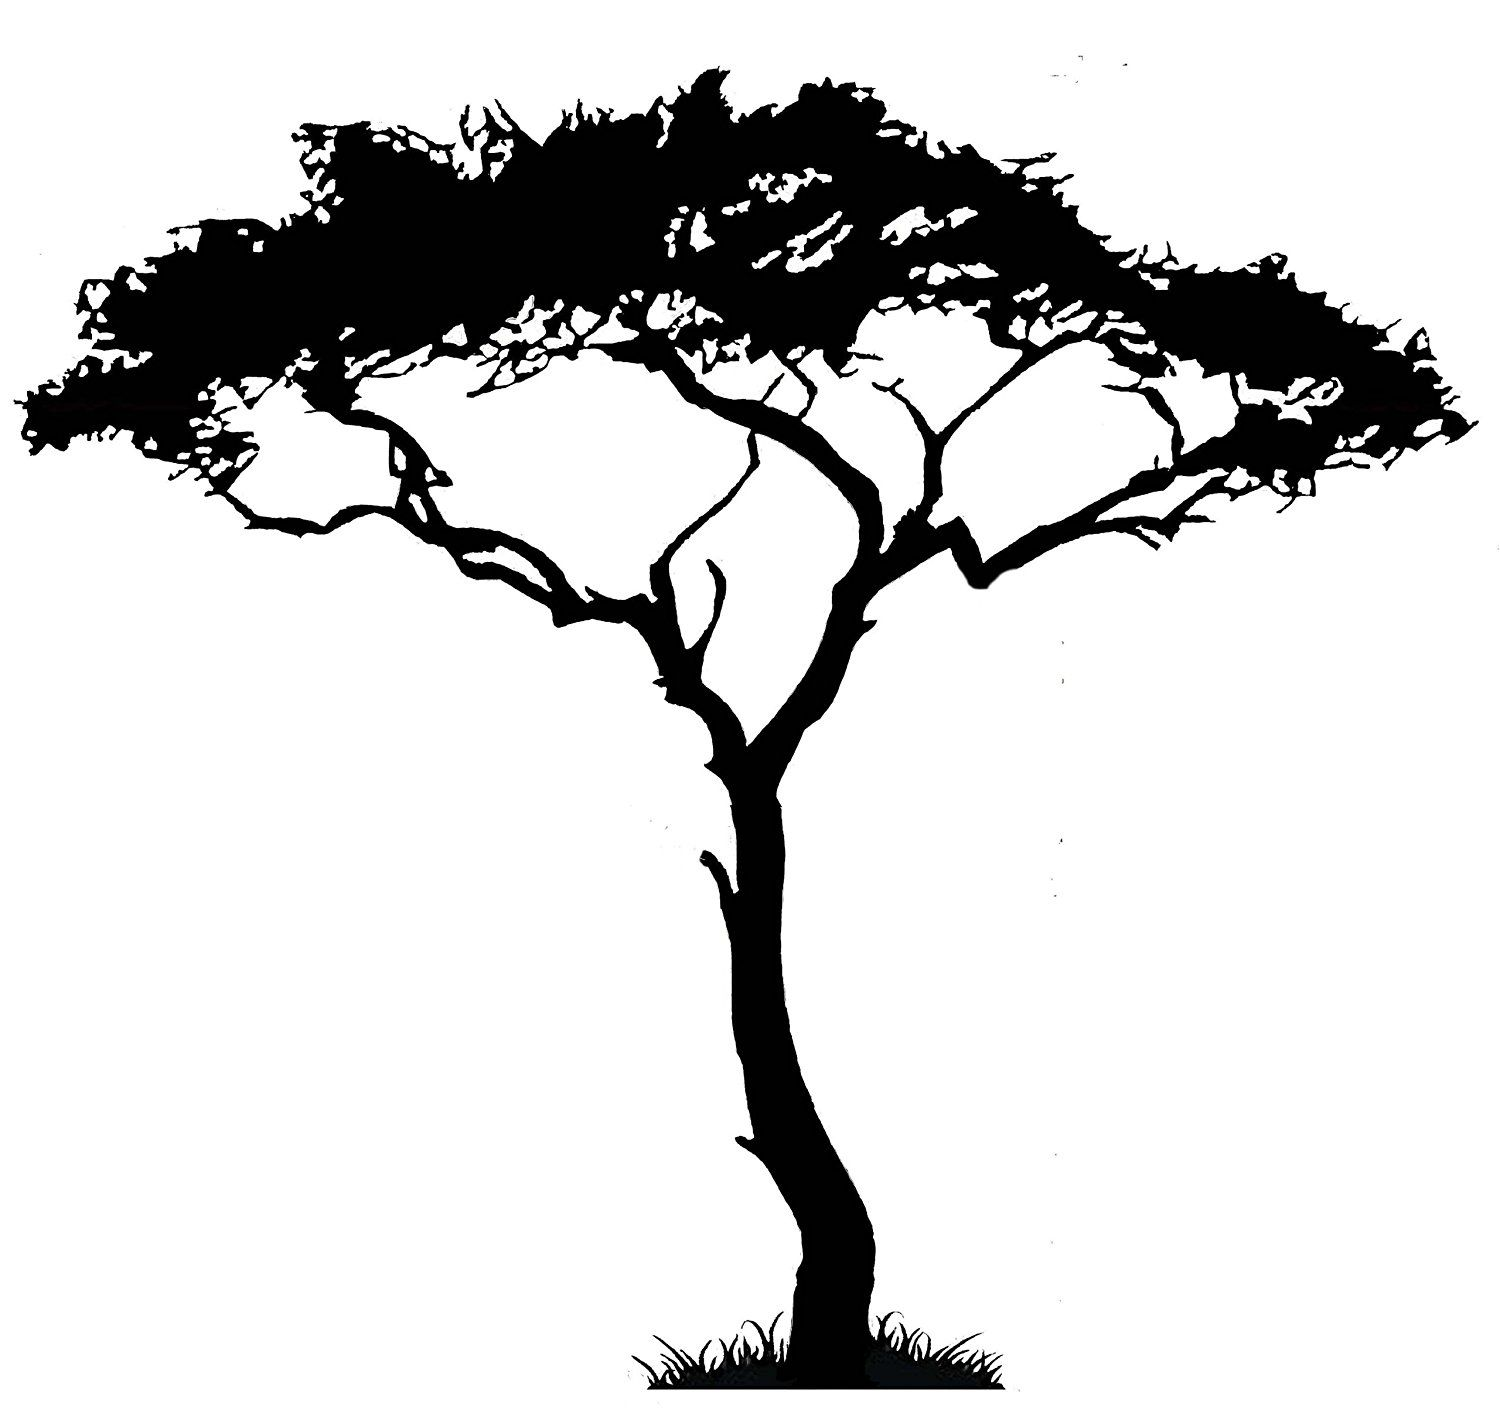 Uber Decals Vinyl Wall Decal Sticker African Tree 105 57X62